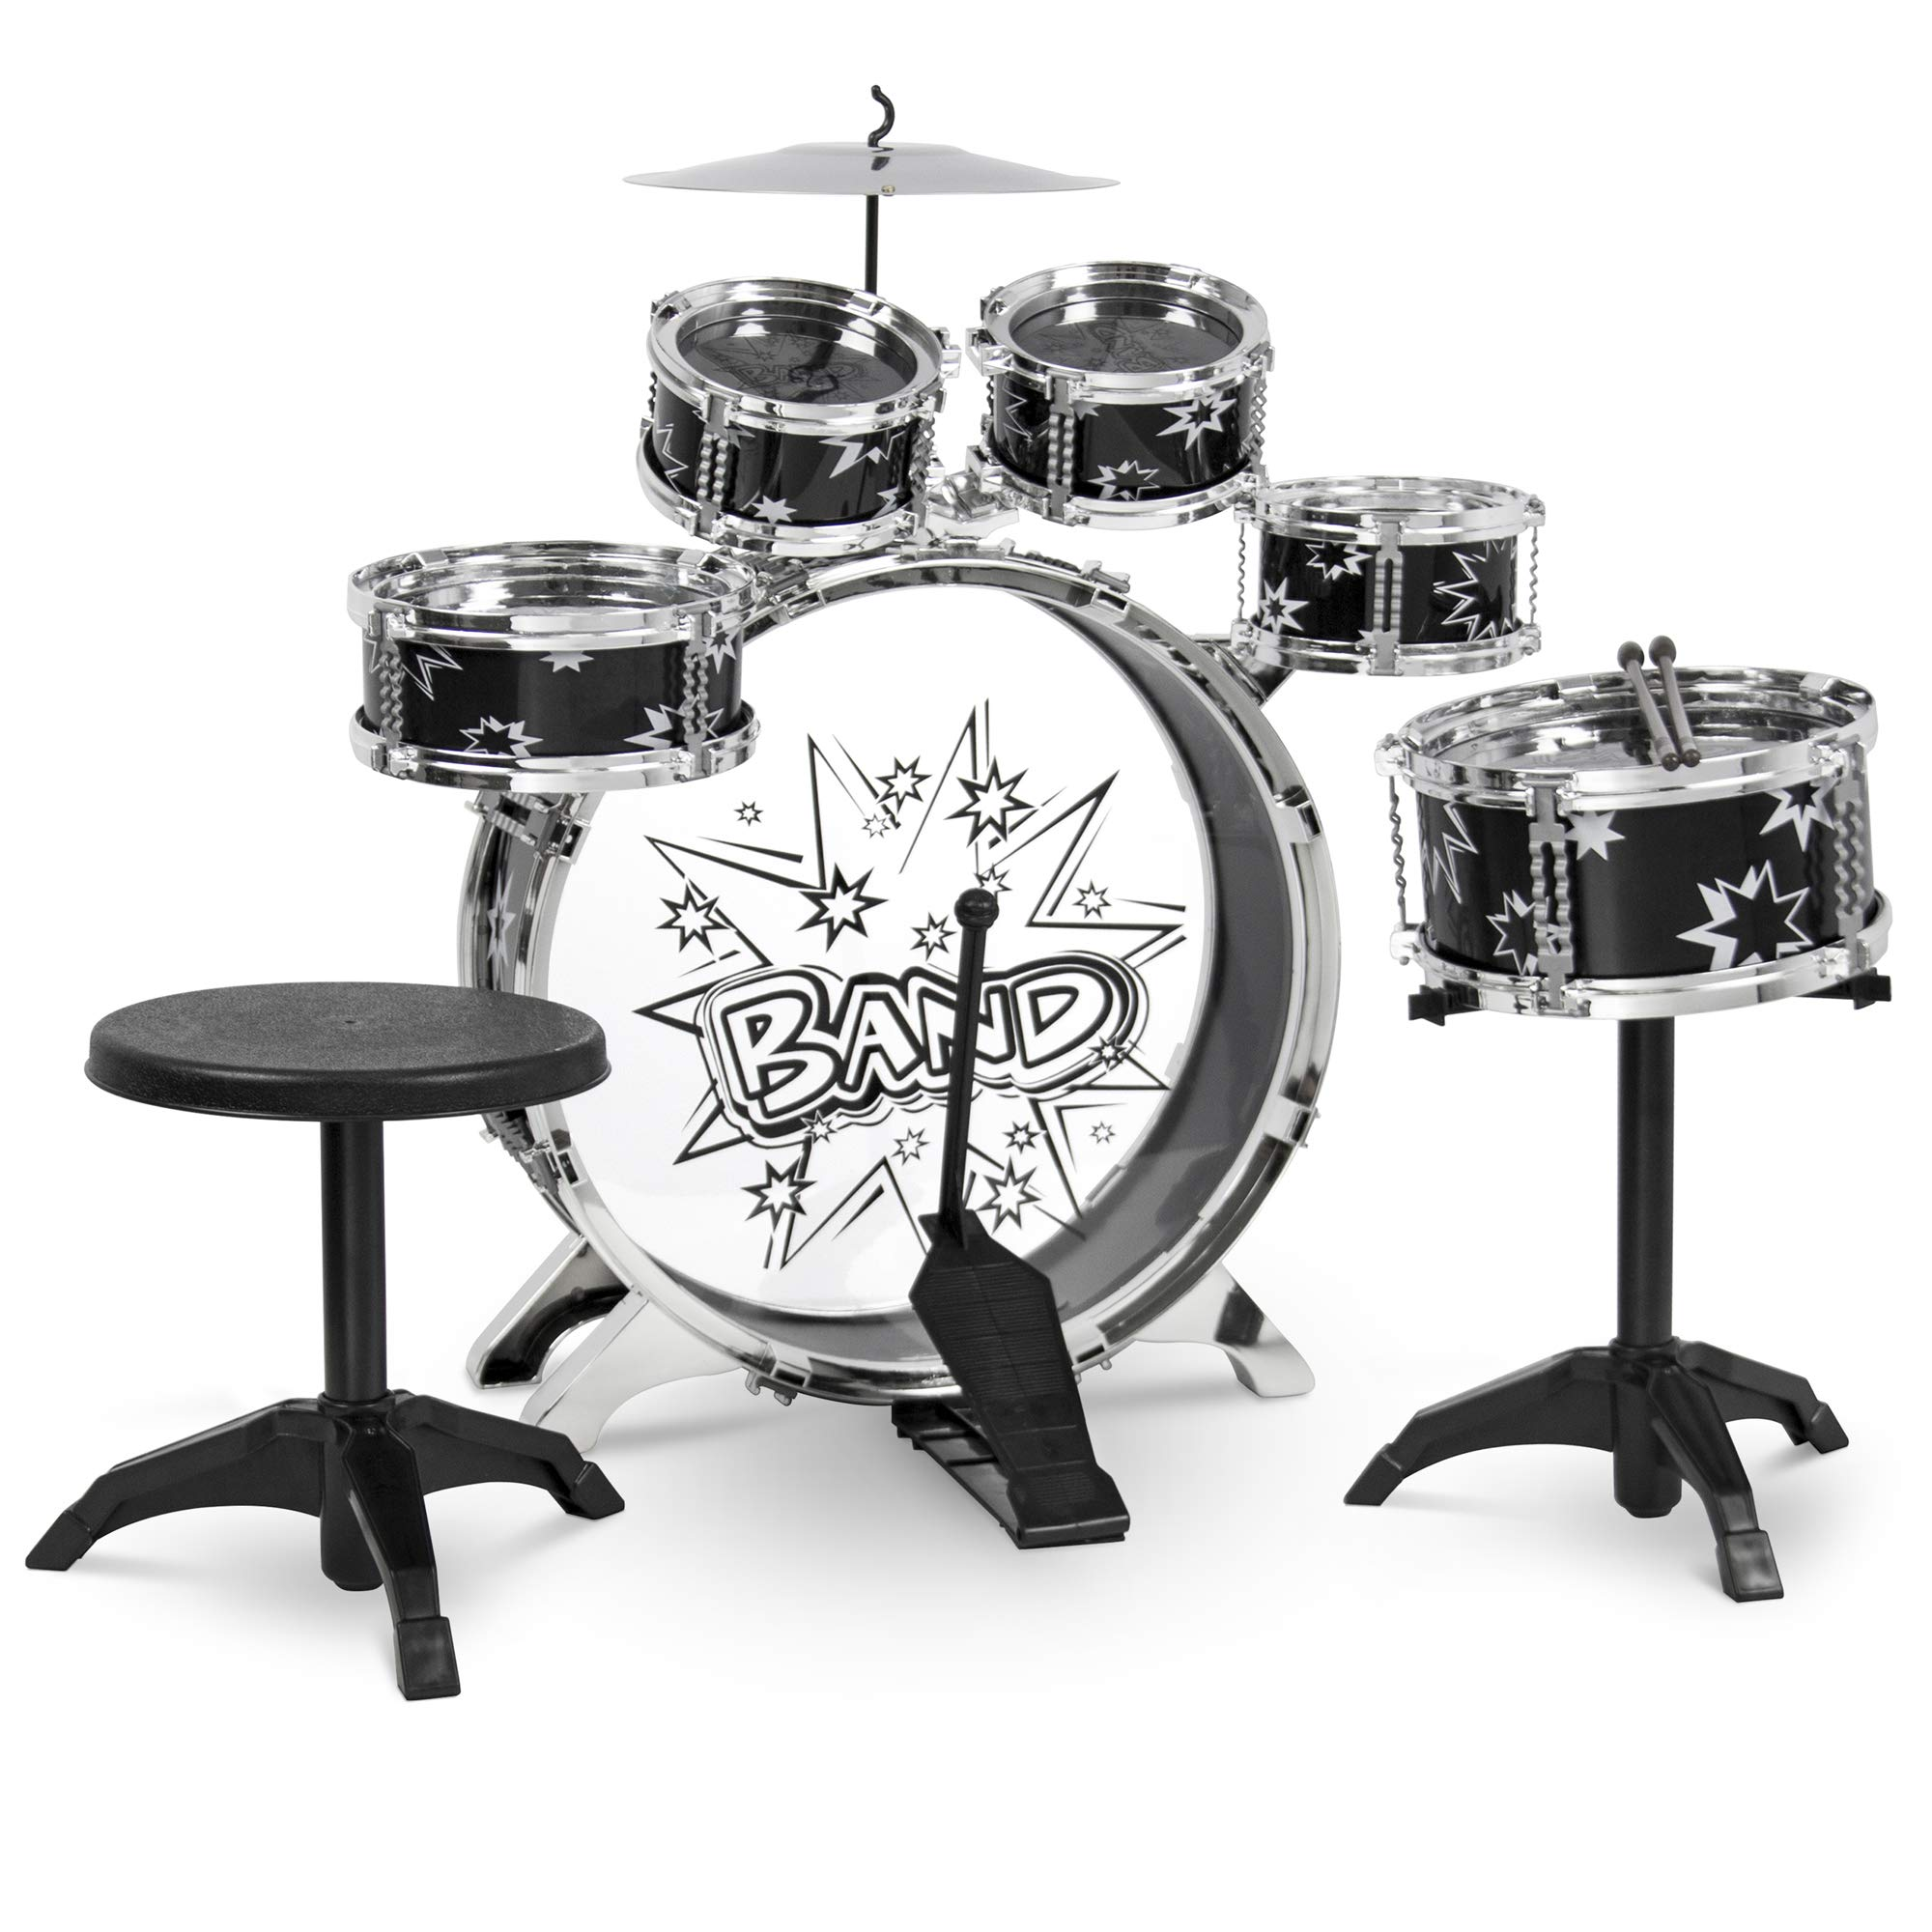 Best Choice Products 11-Piece Kids Starter Drum Set for Beginner Learning, Motor Development, Creativity, Musical Skill w/ Bass Drum, Tom Drums, Snare, Cymbal, Stool, Drumsticks - Black by Best Choice Products